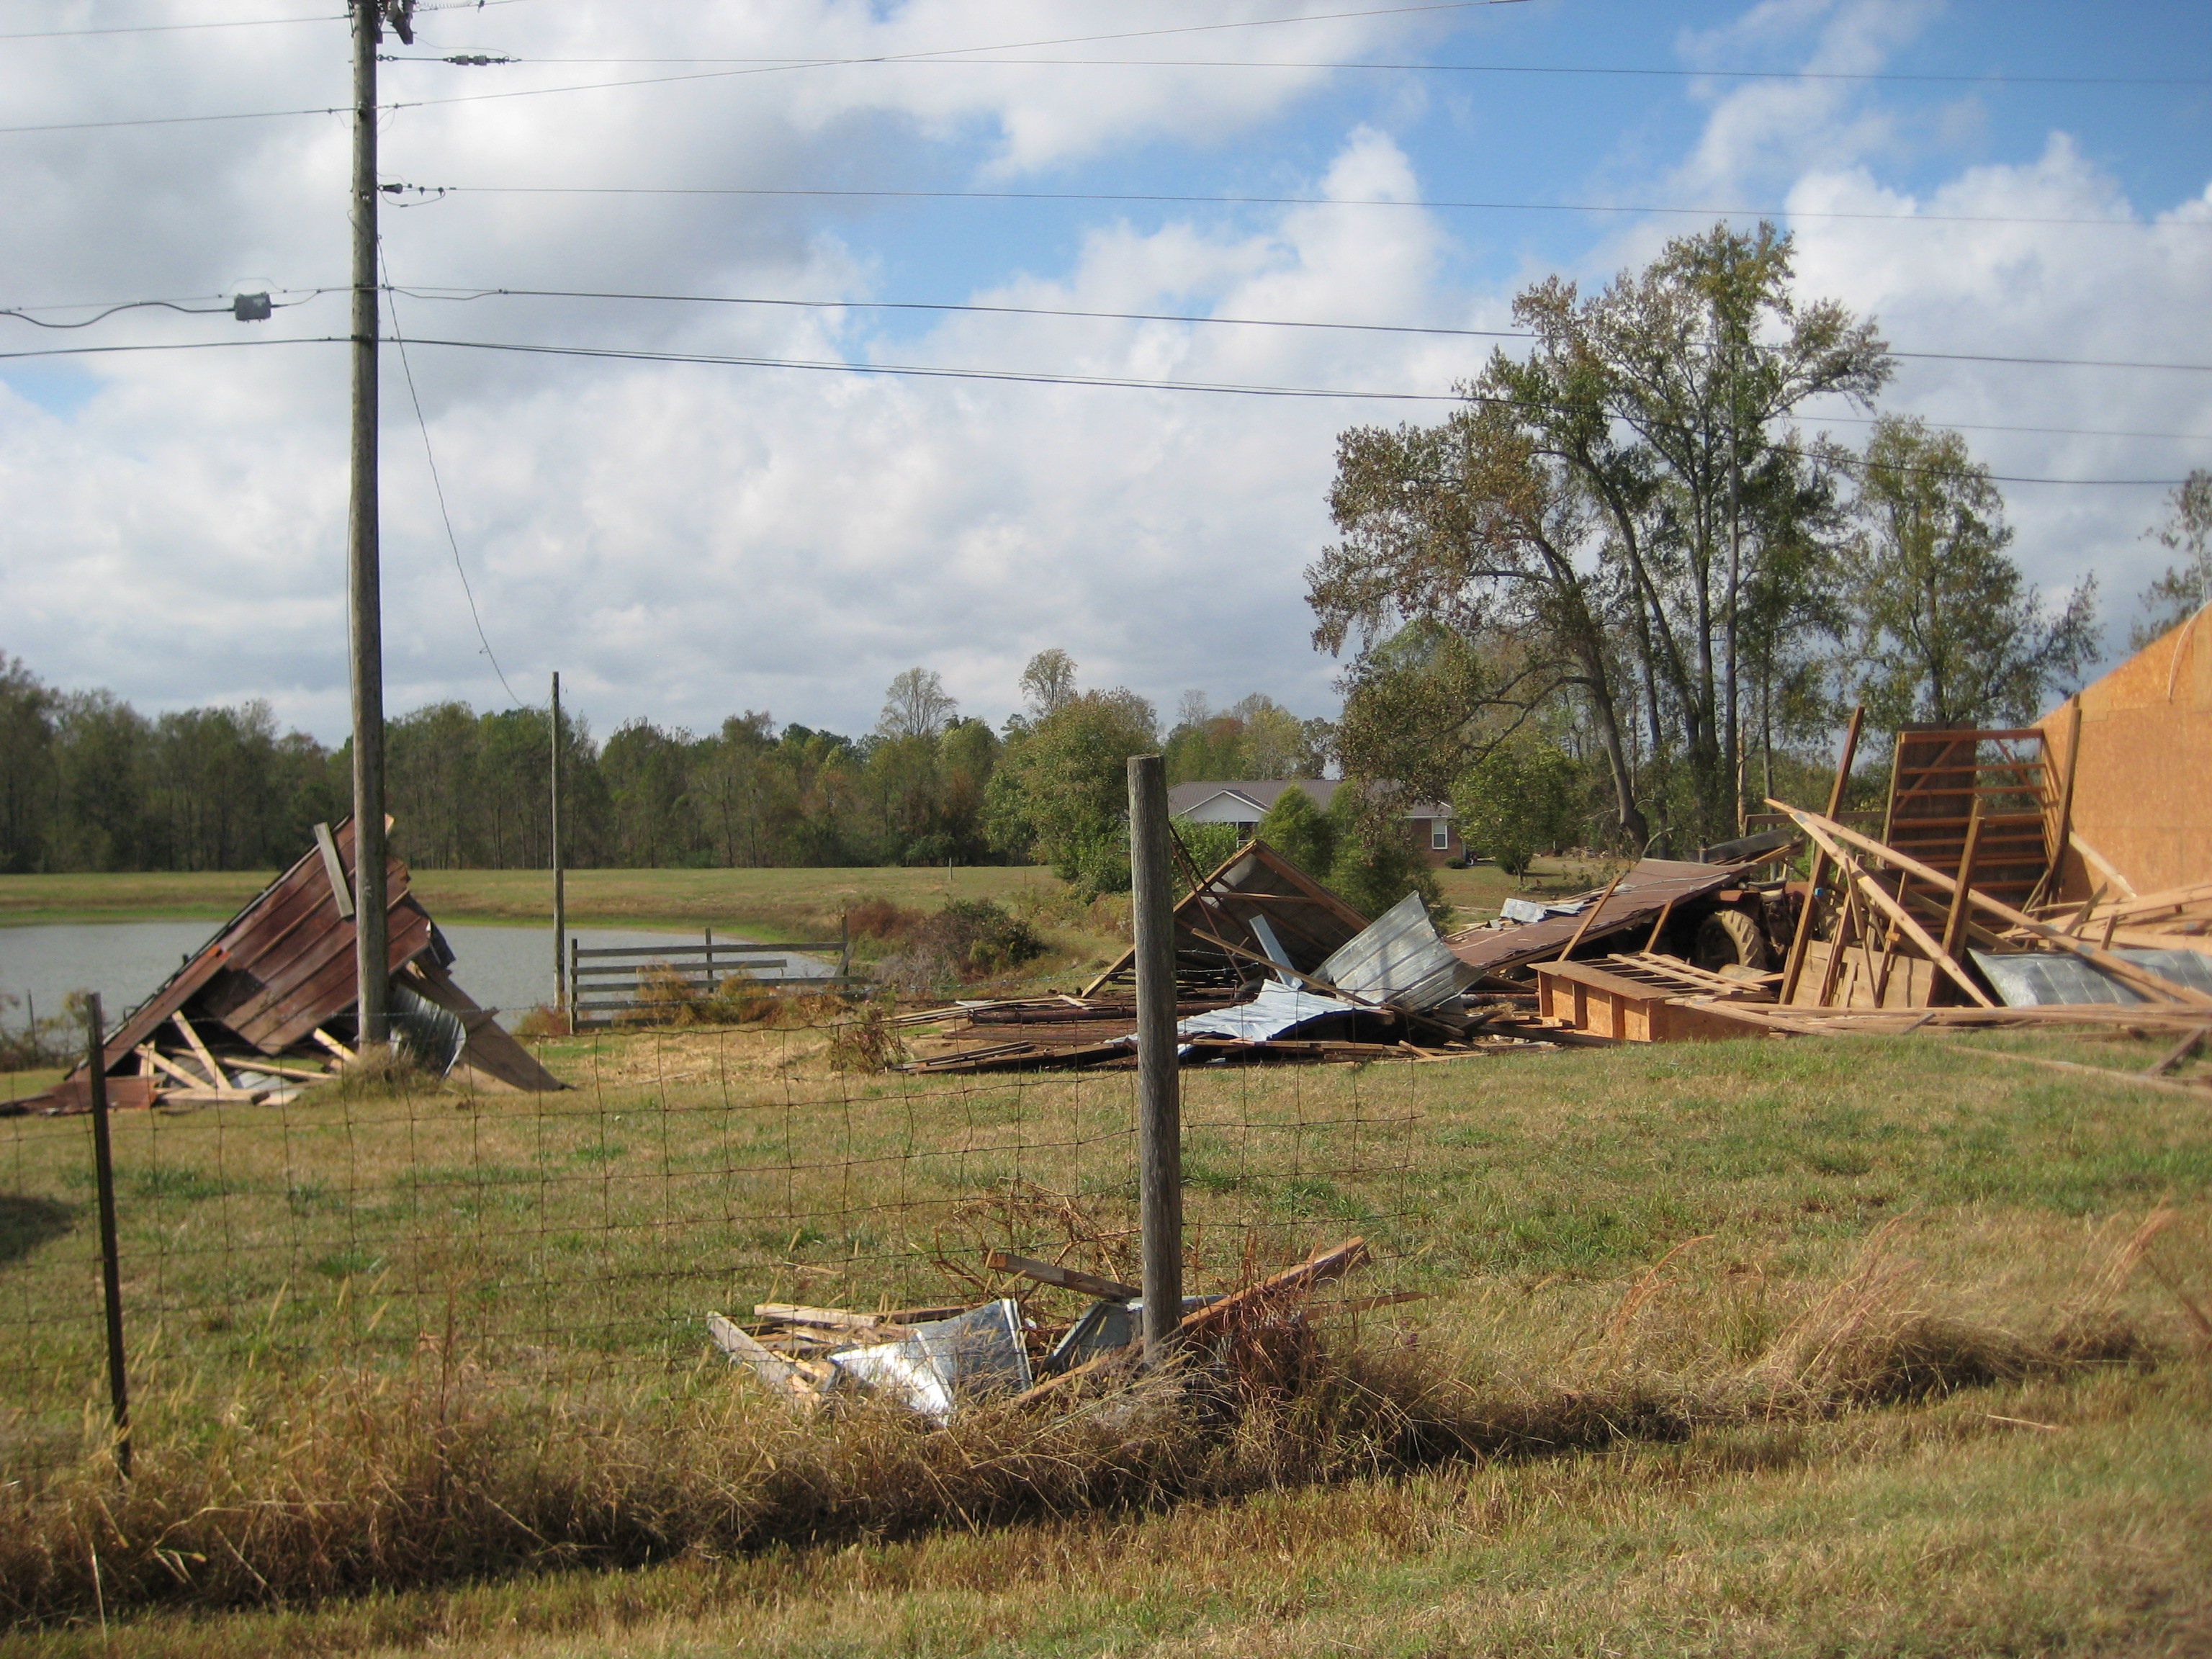 A portion of a barn destroyed along the path.